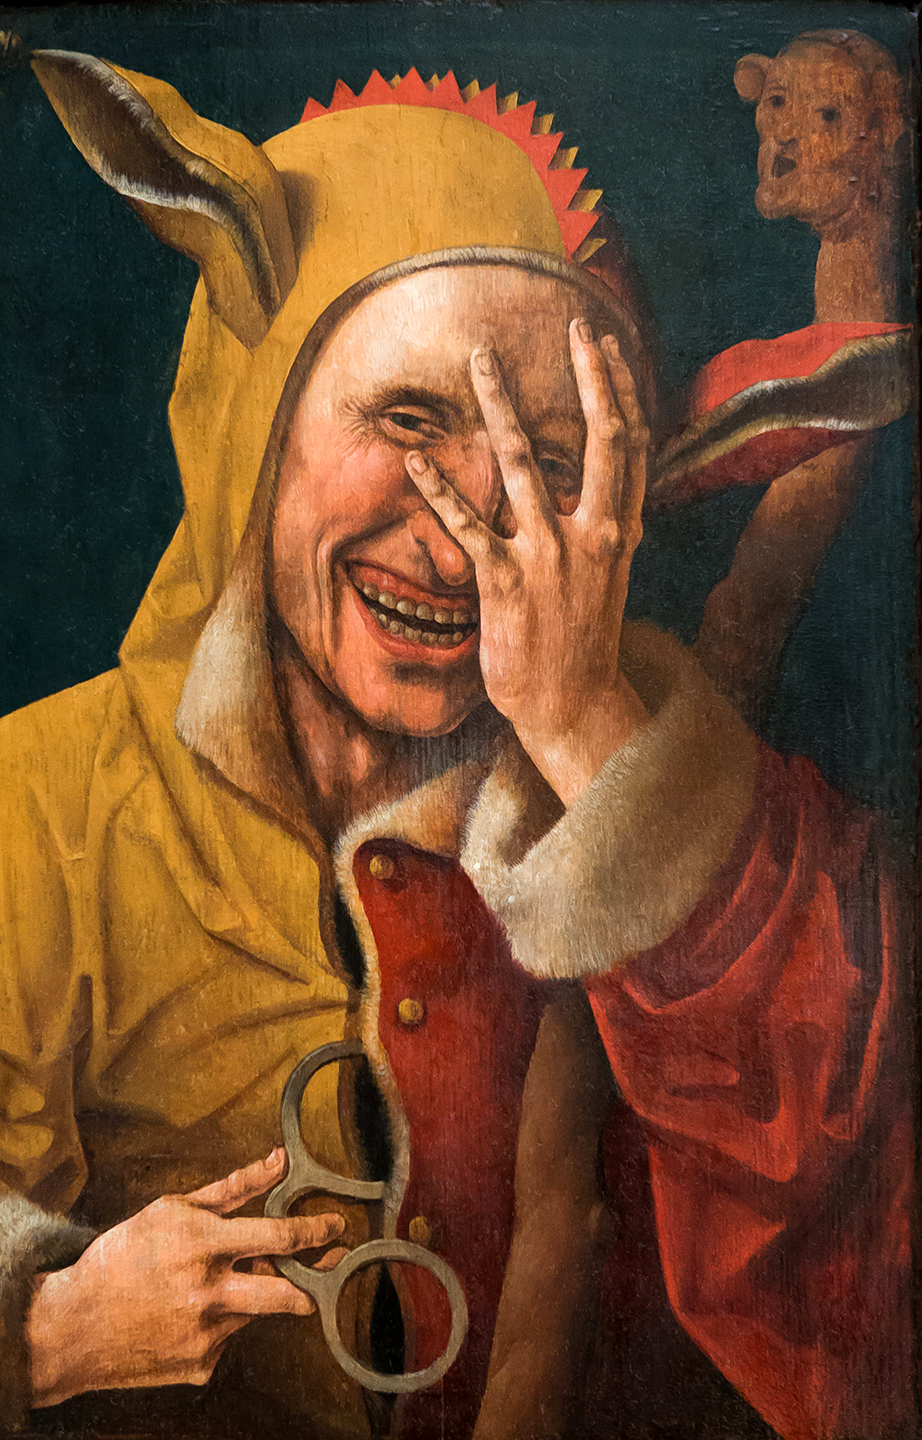 A Laughing Fool. Netherlandish oil painting (possibly Jacob Cornelisz. van Oostsanen) ca. 1500.